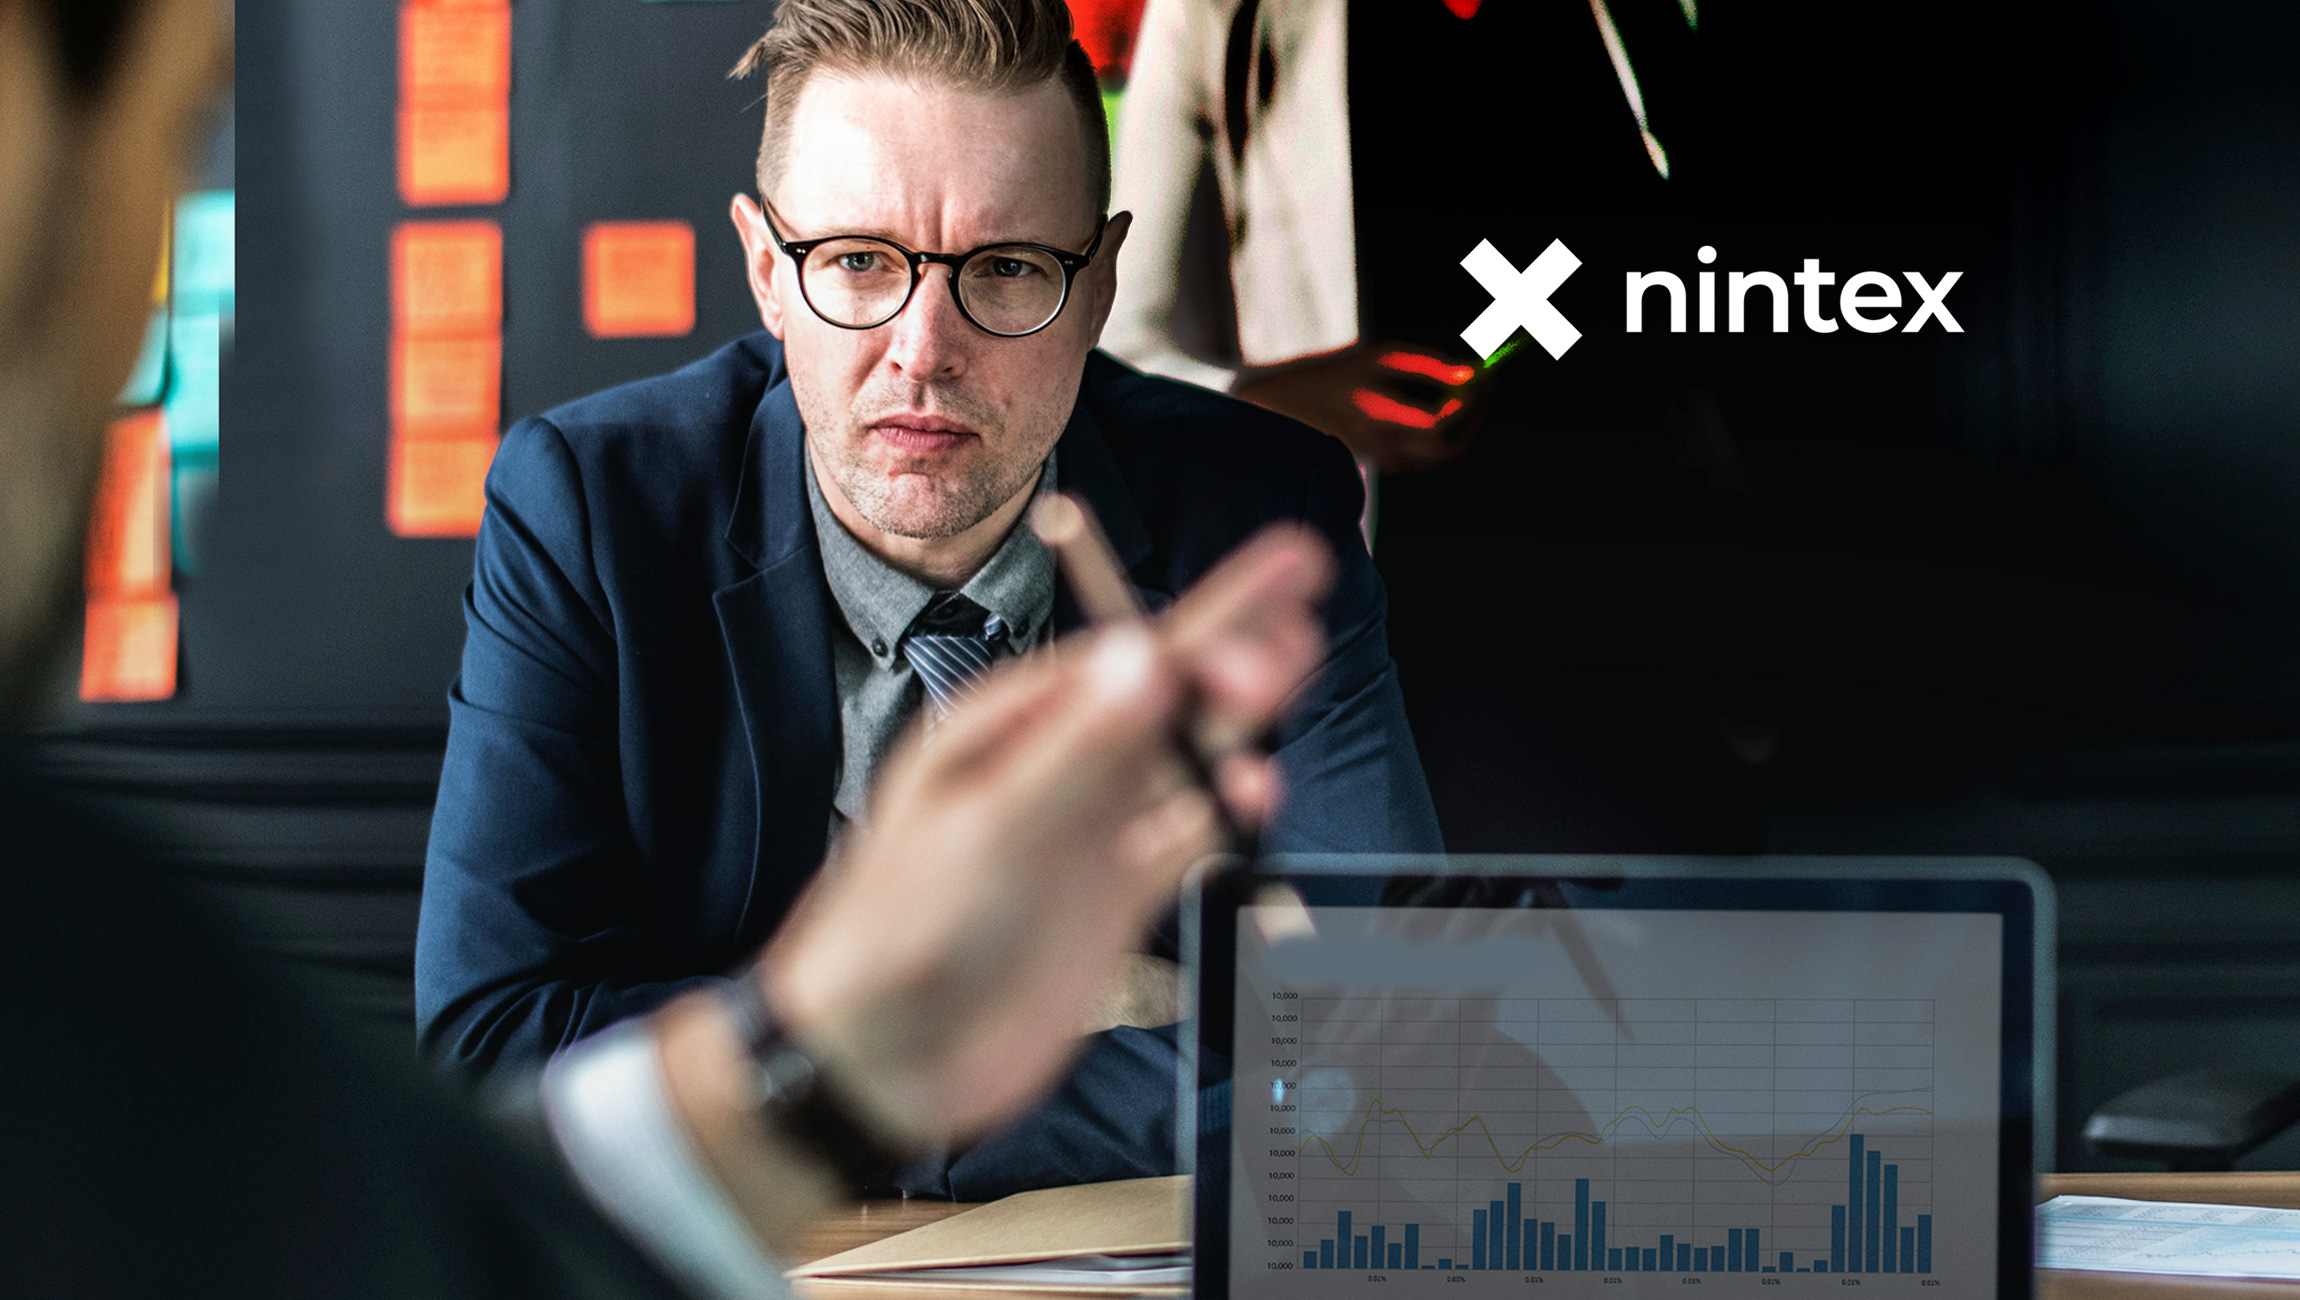 Nintex Introduces New Automation Apps for Sales Professionals